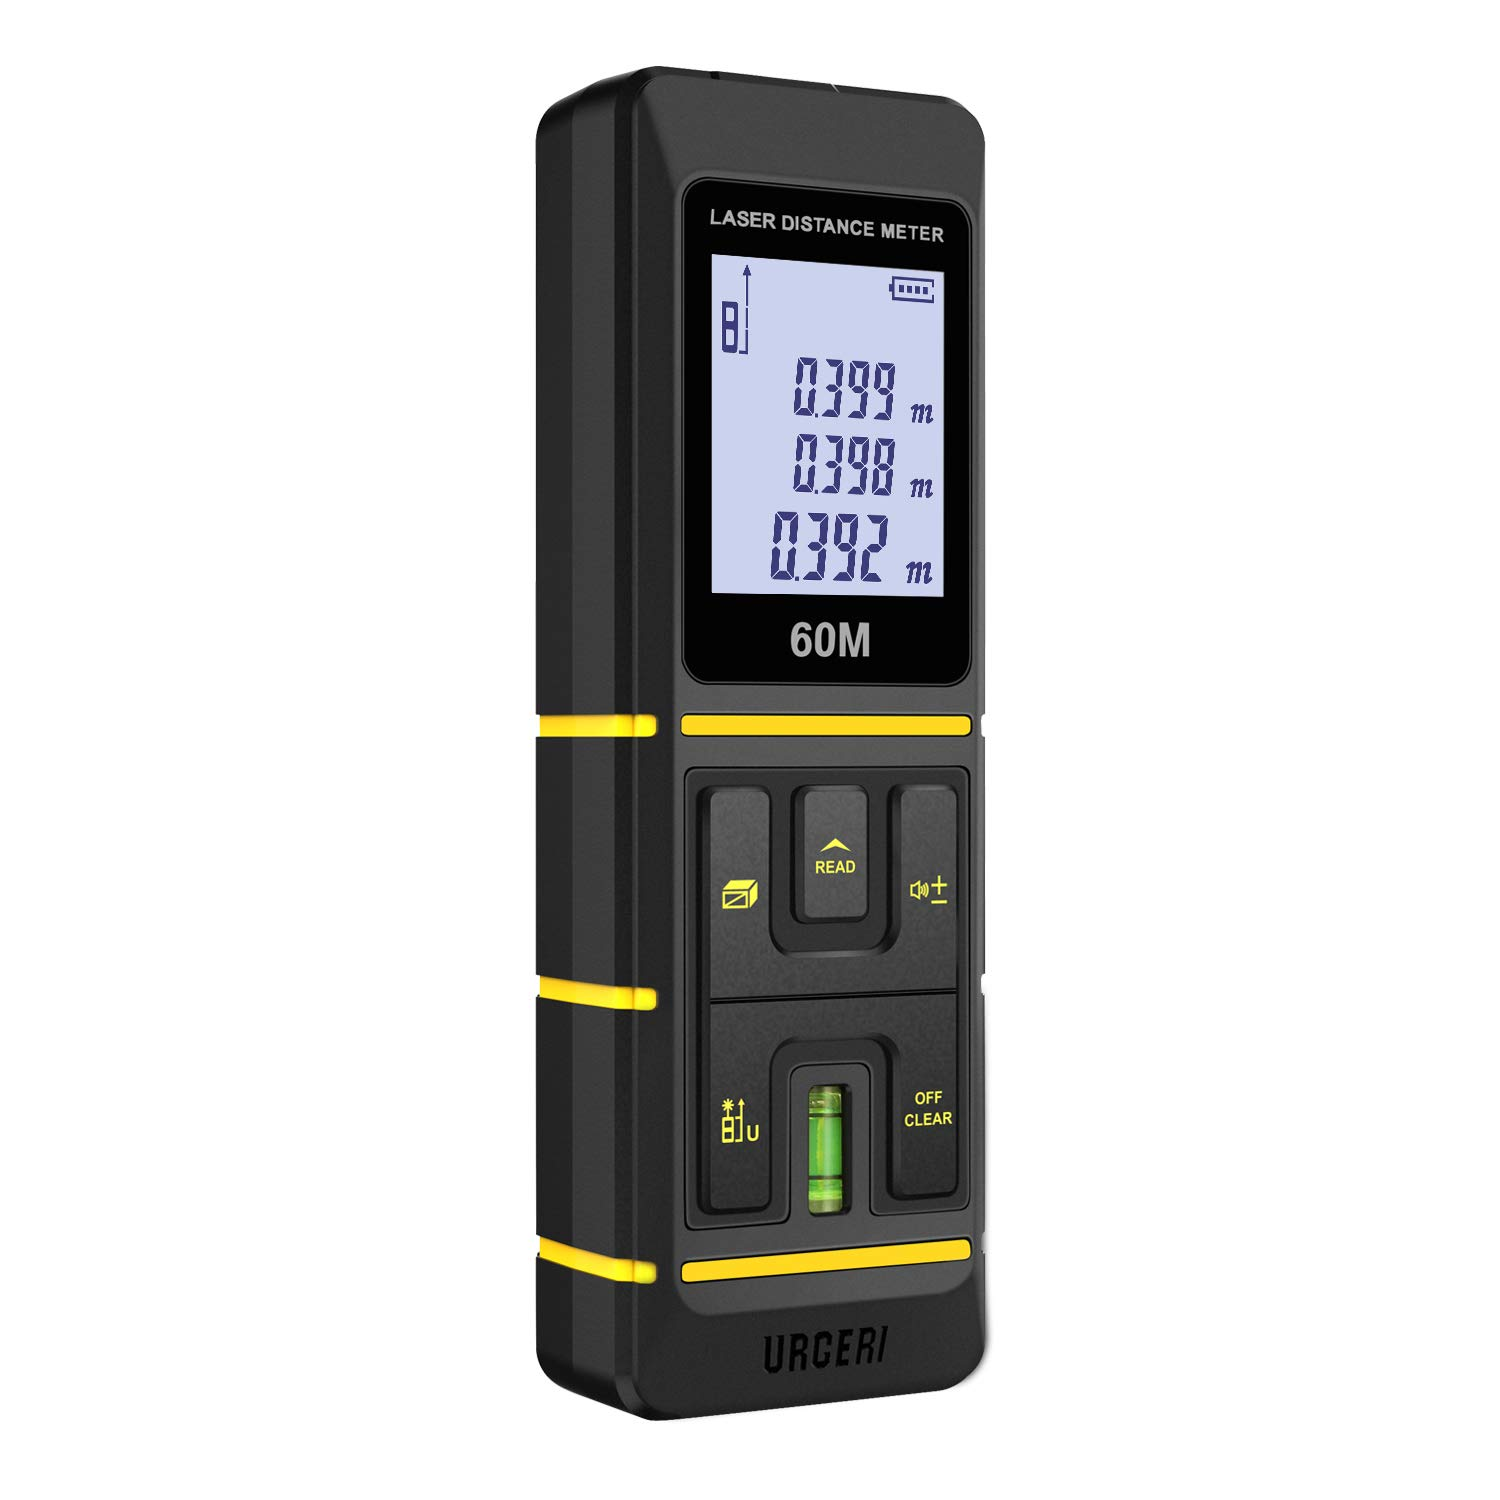 URCERI Z1 Laser Measure 197Ft M/In/Ft Laser Distance Meter with Bubble Levels,Backlit LCD, Pythagorean Mode, Measure Distance, Area and Volume - ±2mm Accuracy, Battery Included